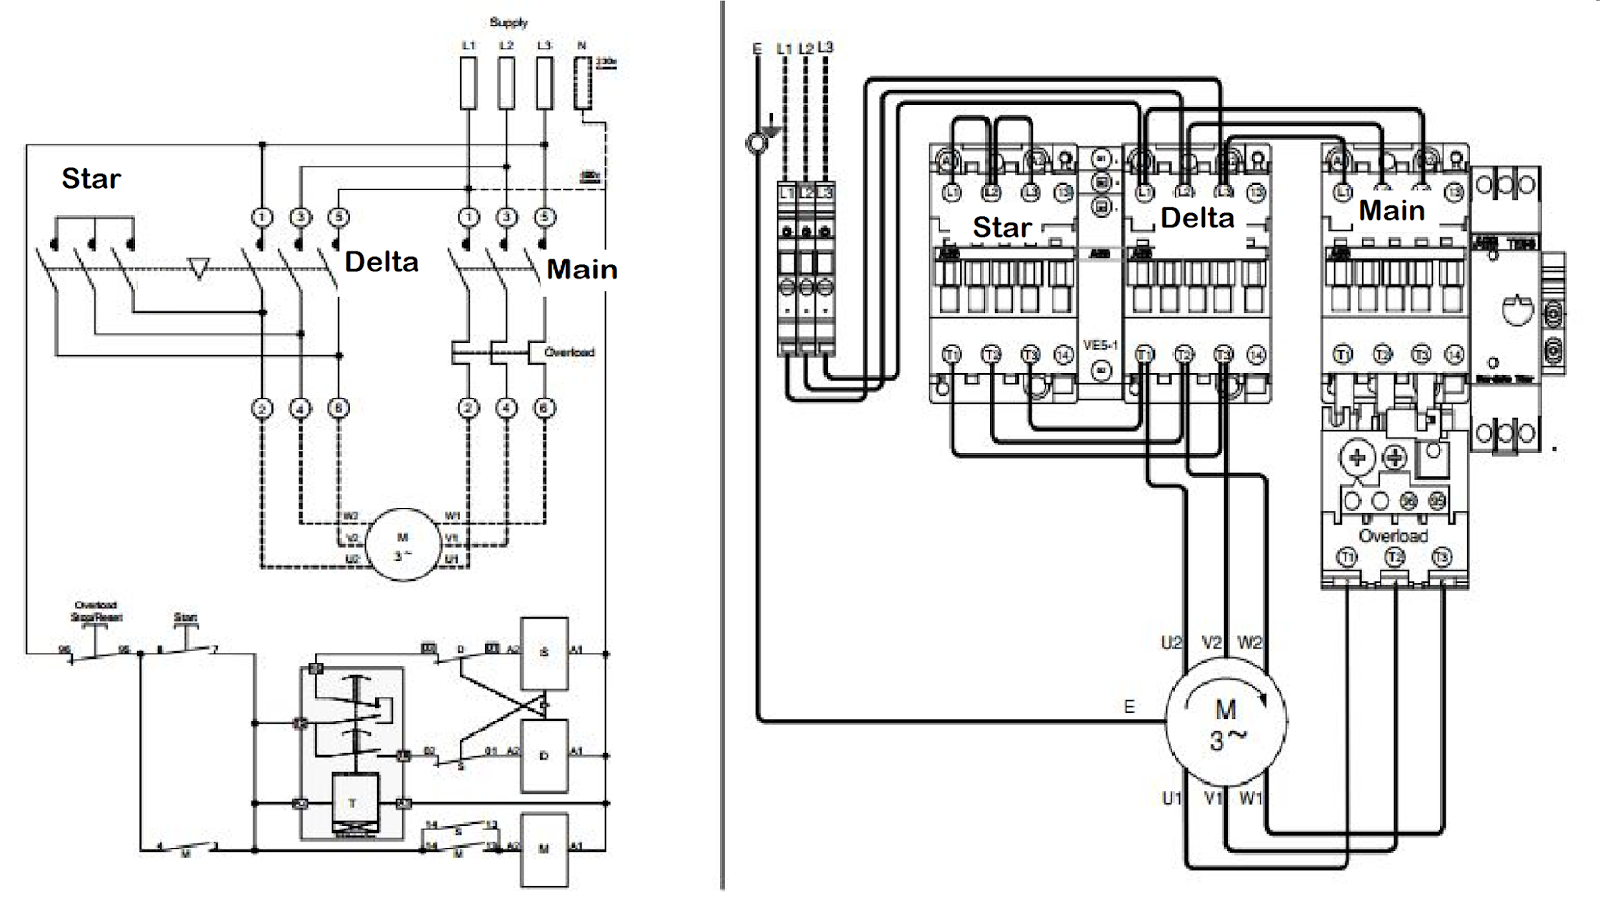 Siemens Star Delta Starter Wiring Diagram likewise 3 Phase Mag ic Starter Wiring Diagram besides Star Delta Starter Wiring Diagram in addition 1964 Ford Fairlane Wiring Diagram Nodasystech as well 3a Two Wire Control Circuits. on siemens motor starter wiring diagram